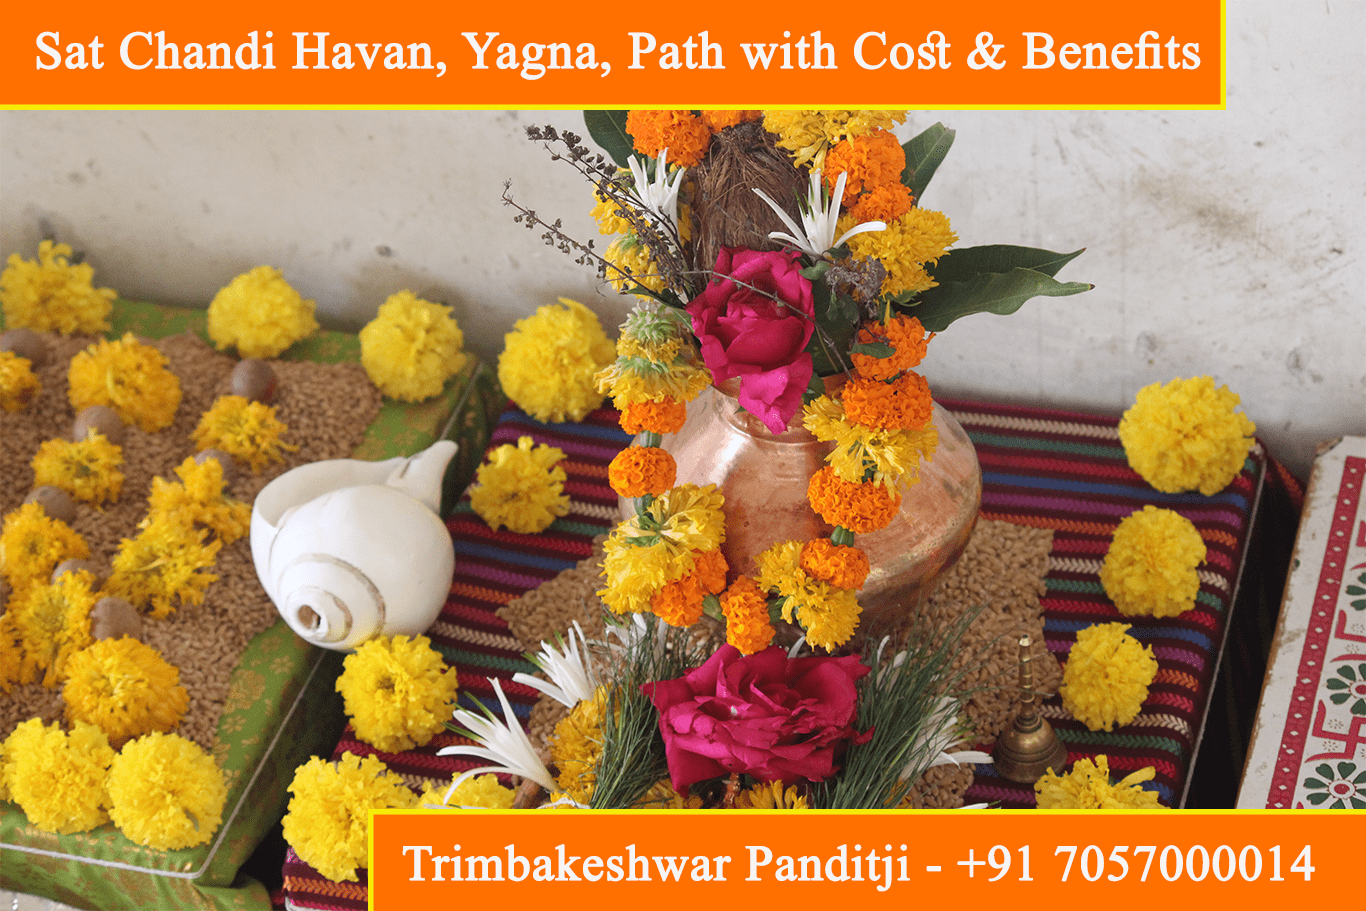 Sat Chandi Havan Yagna Puja Path With Cost Mantra Benefits